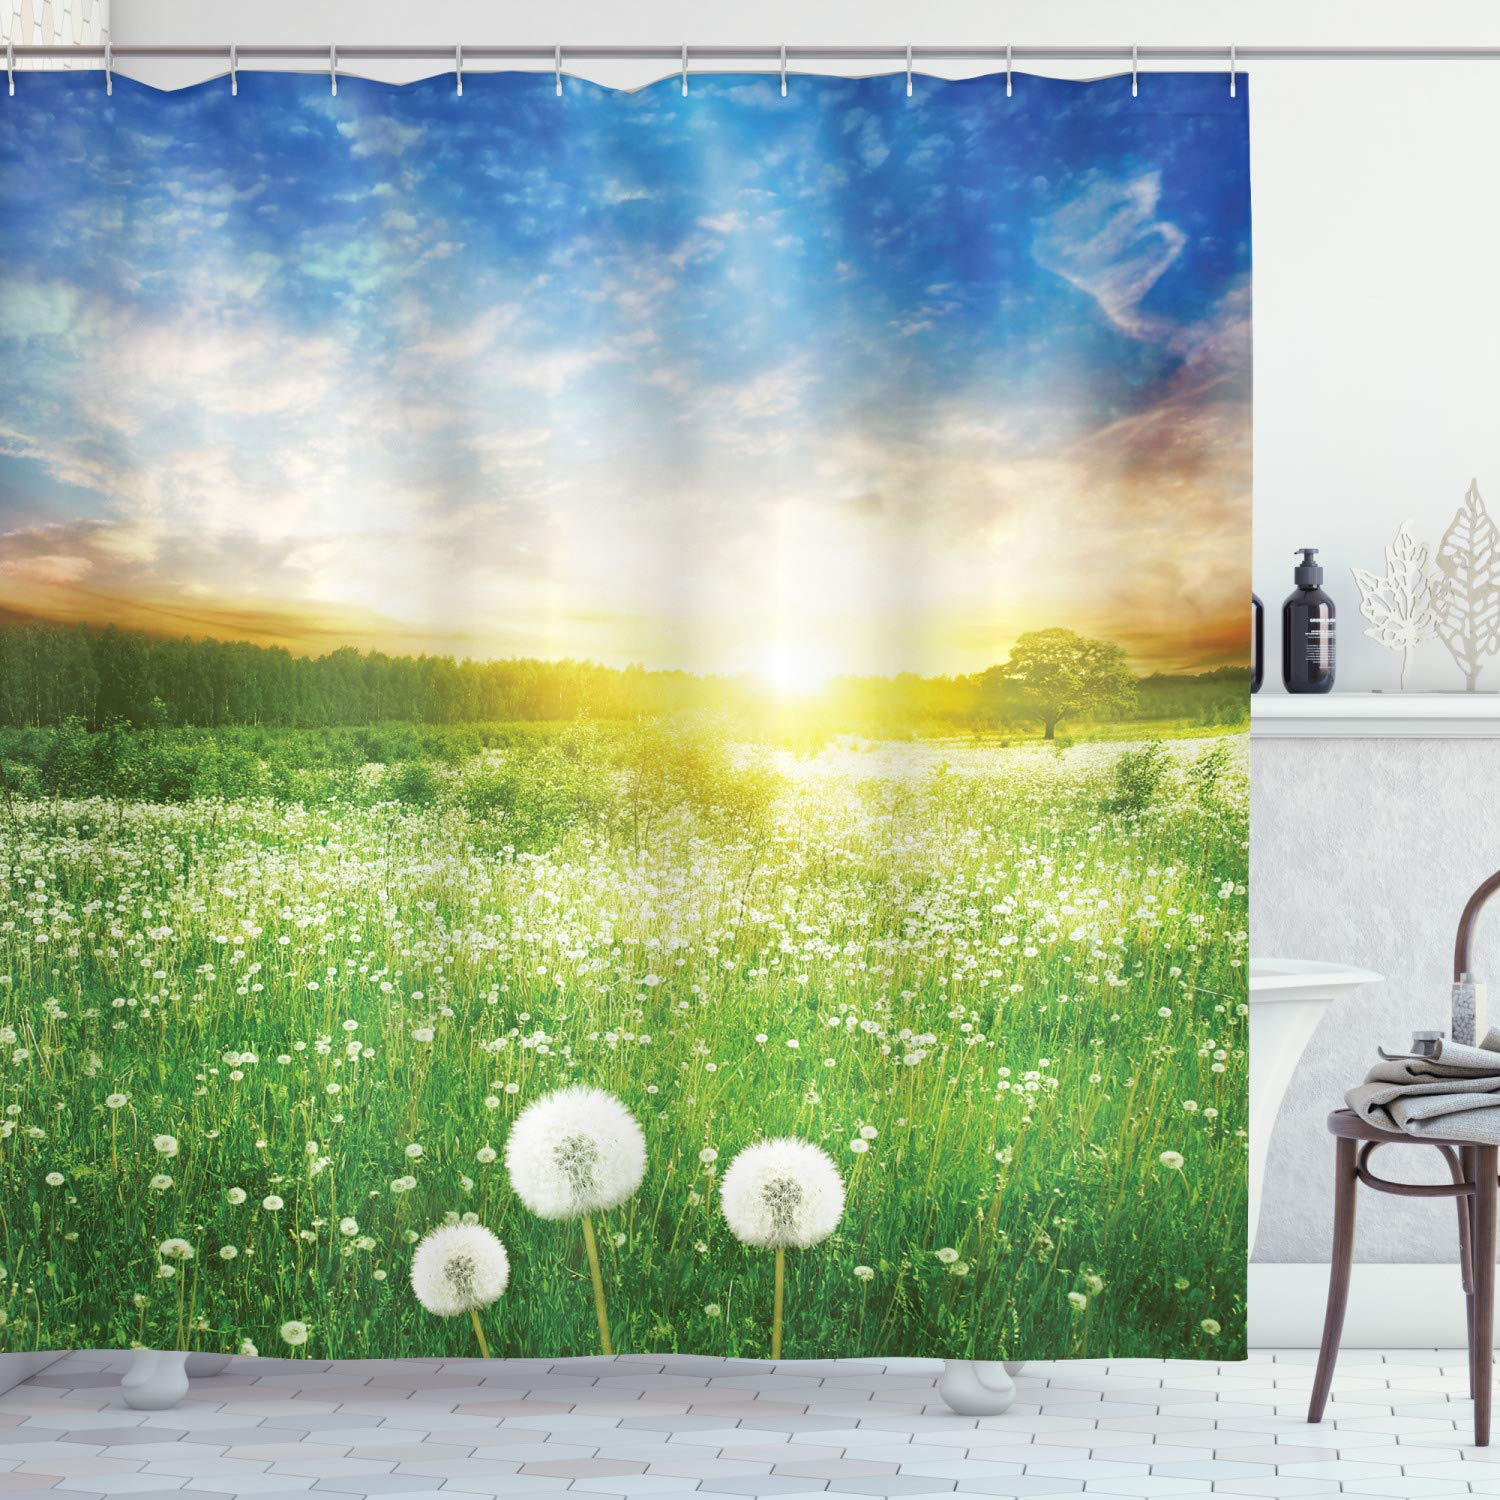 """Ambesonne Spring Shower Curtain, Dandelion Flower Field Meadow Rural Grass Vivid Sunset Clouds Idyllic Image, Cloth Fabric Bathroom Decor Set with Hooks, 75"""" Long, Lime Green"""